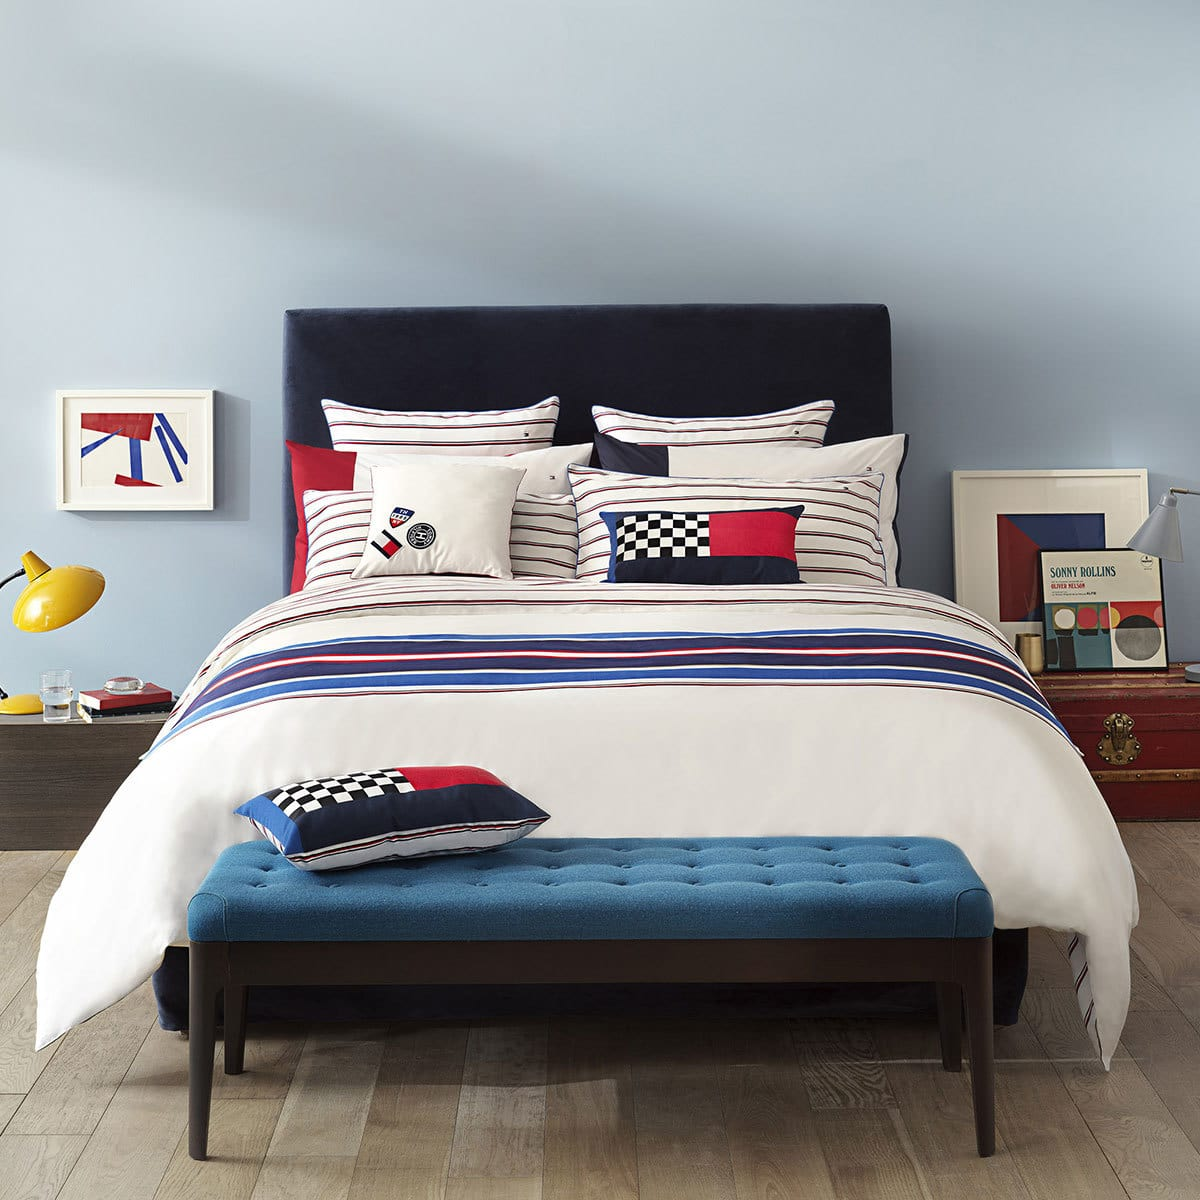 tommy hilfiger mako satin bettw sche racer wei g nstig online kaufen bei bettwaren shop. Black Bedroom Furniture Sets. Home Design Ideas